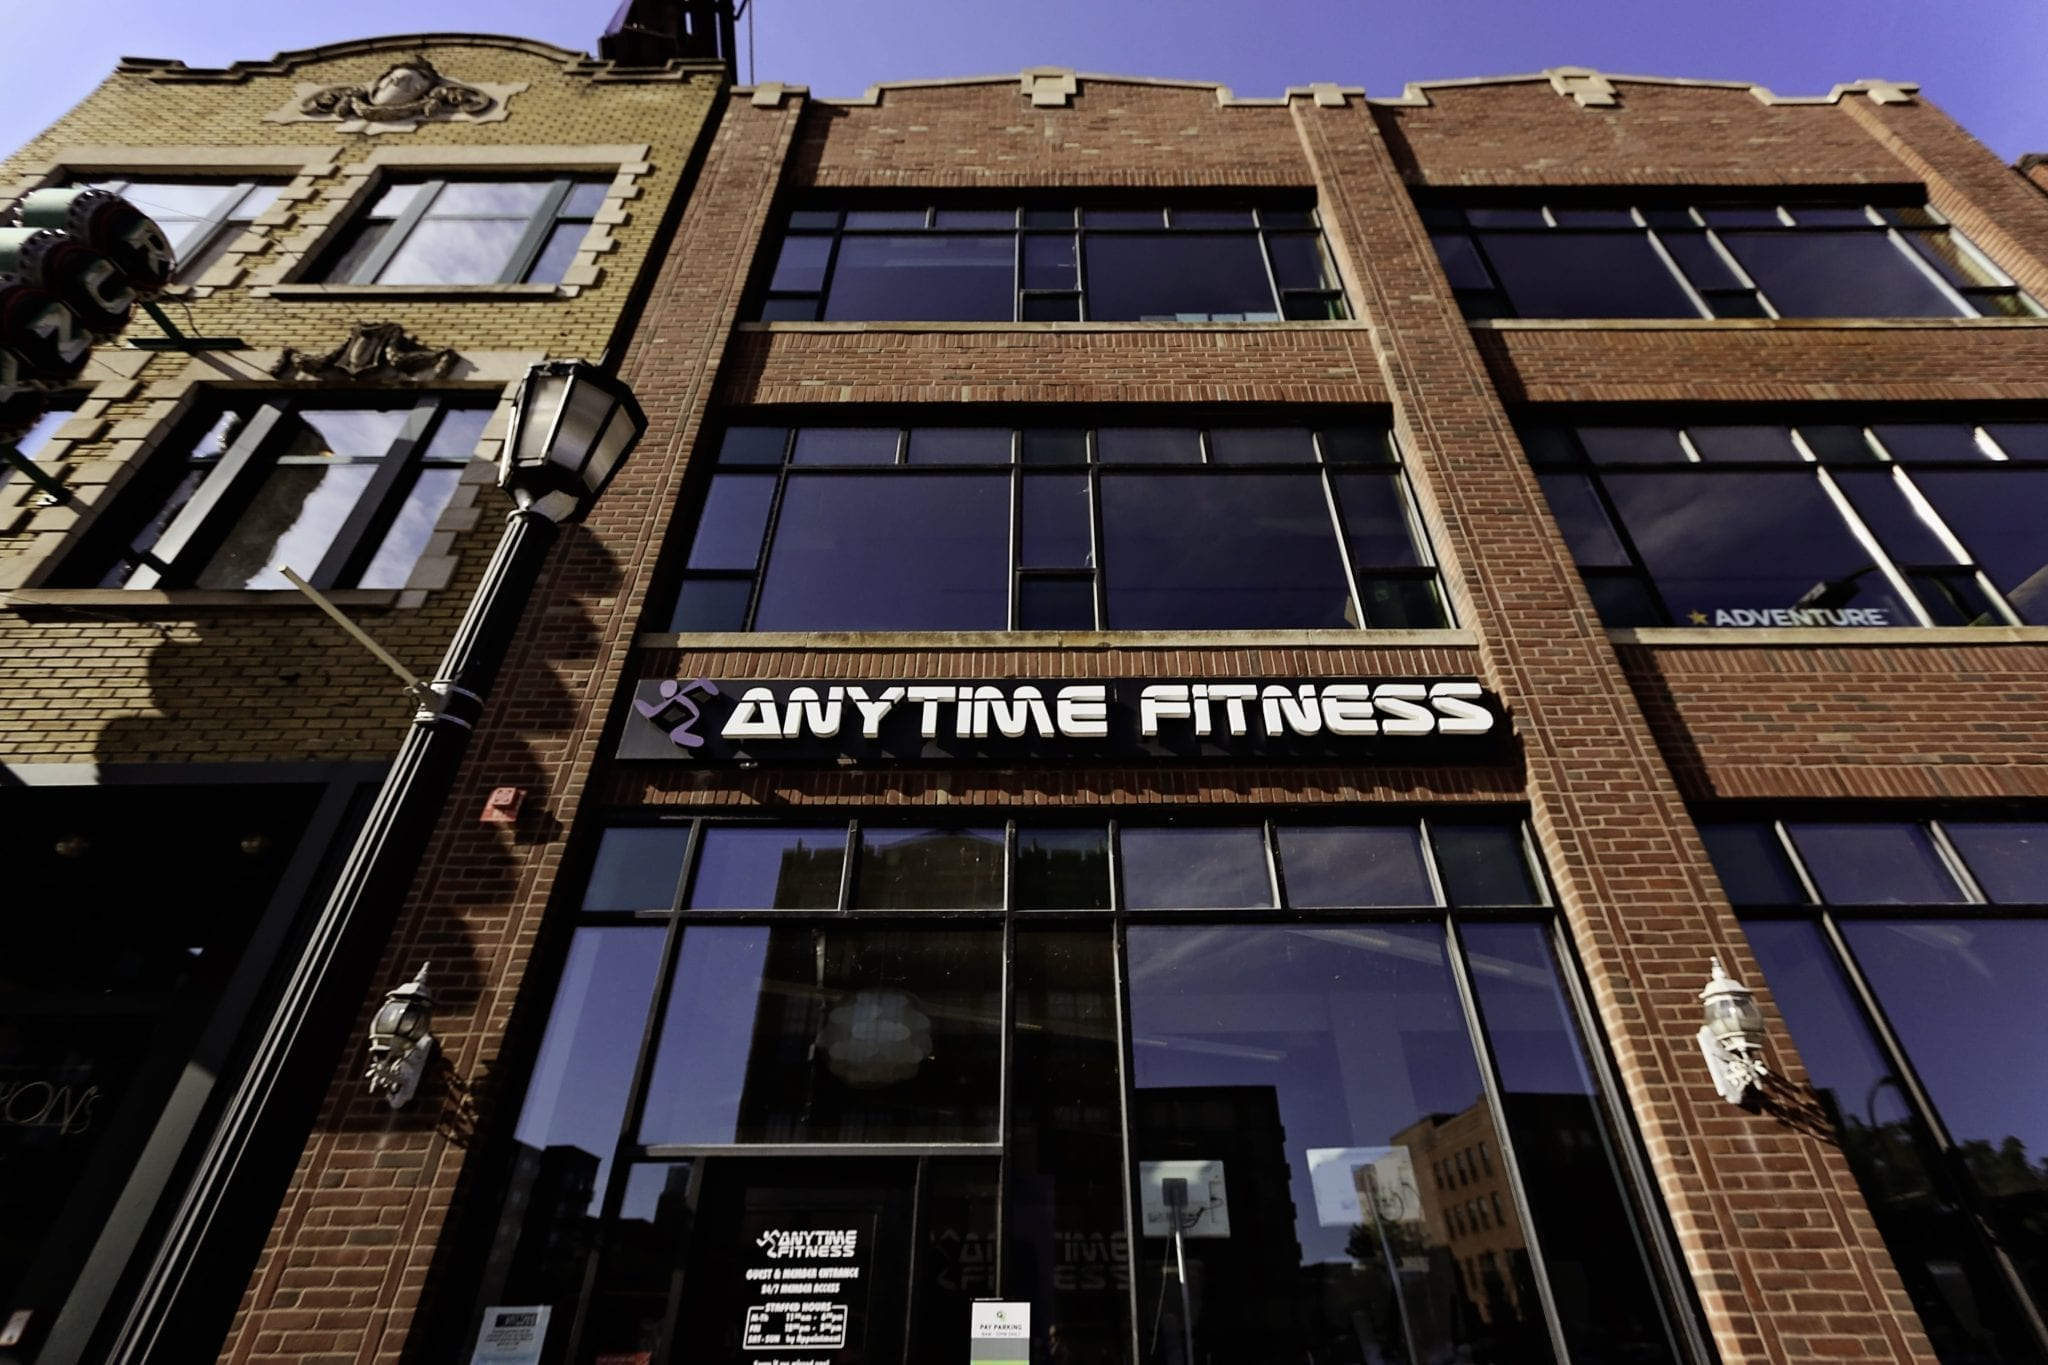 Image courtesy of Anytime Fitness.